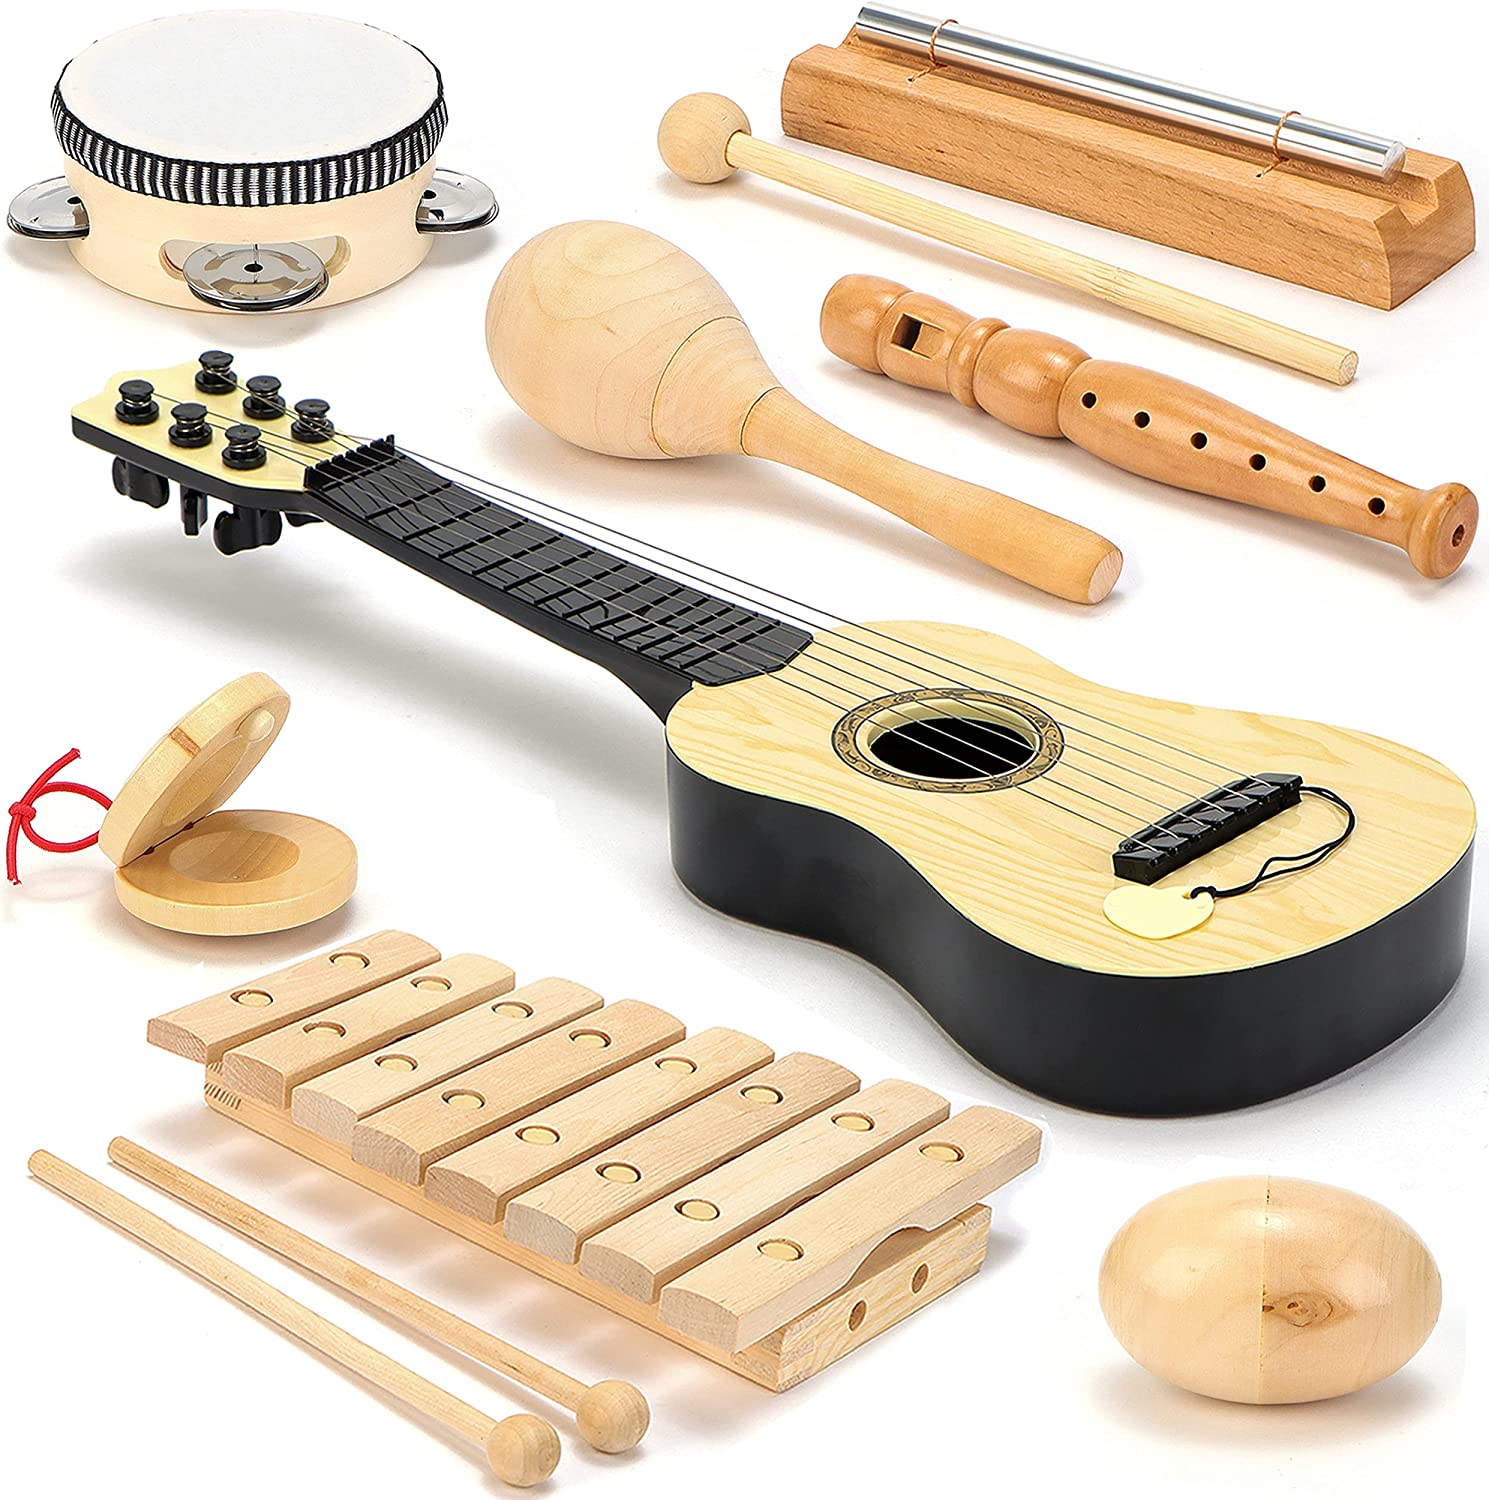 Wooden Musical Instruments for Kids Class Band Low price School Challenge the lowest price Preschool